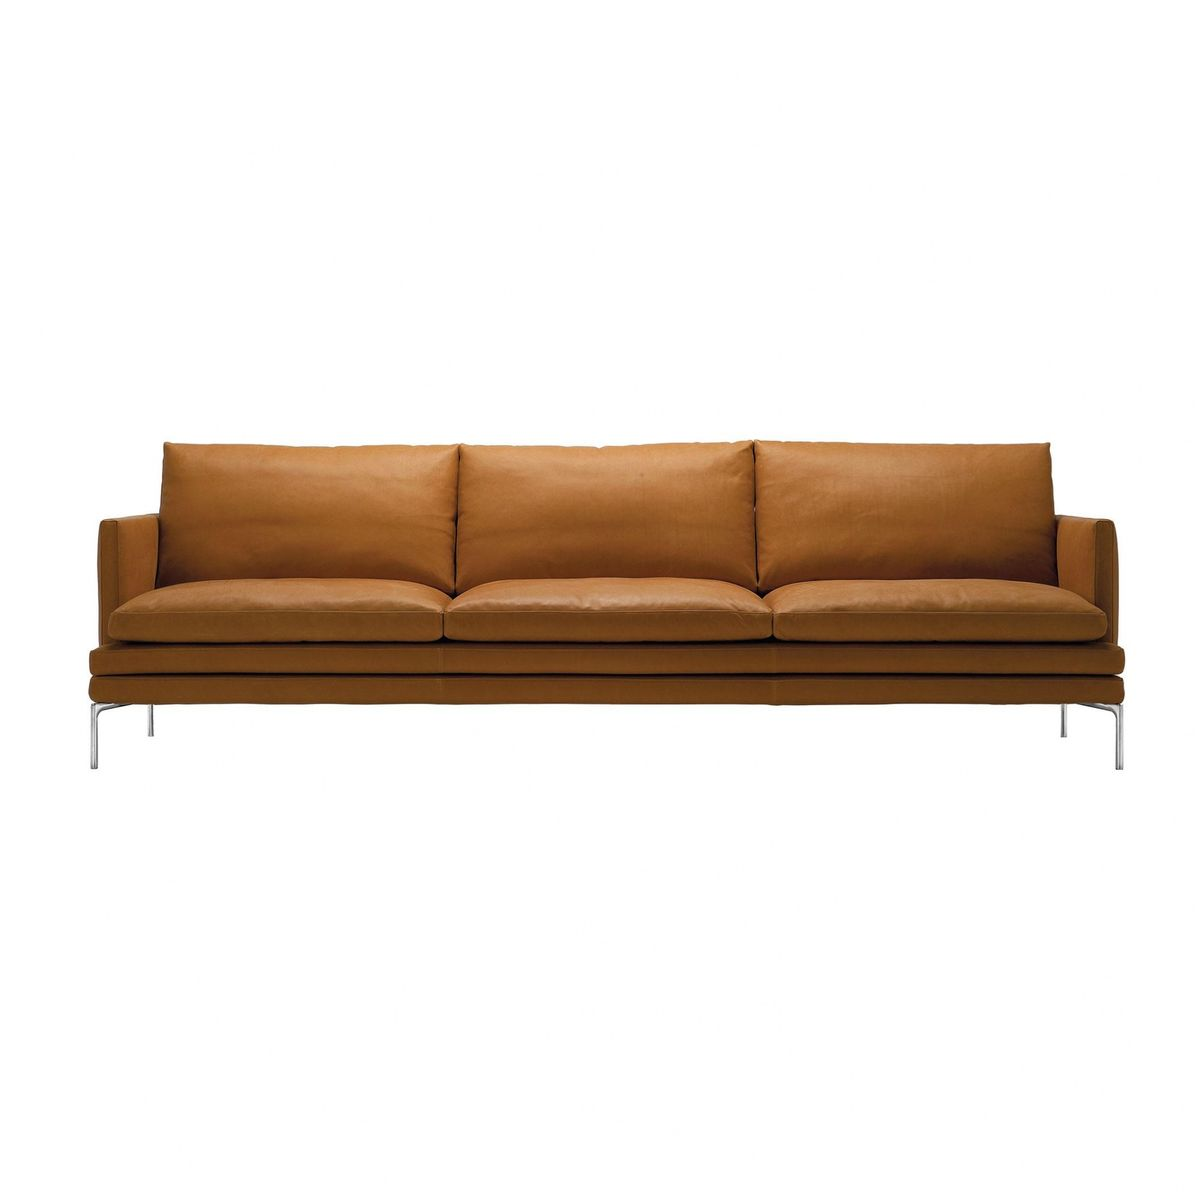 William 3 sitzer sofa zanotta for Sofa 3 sitzer